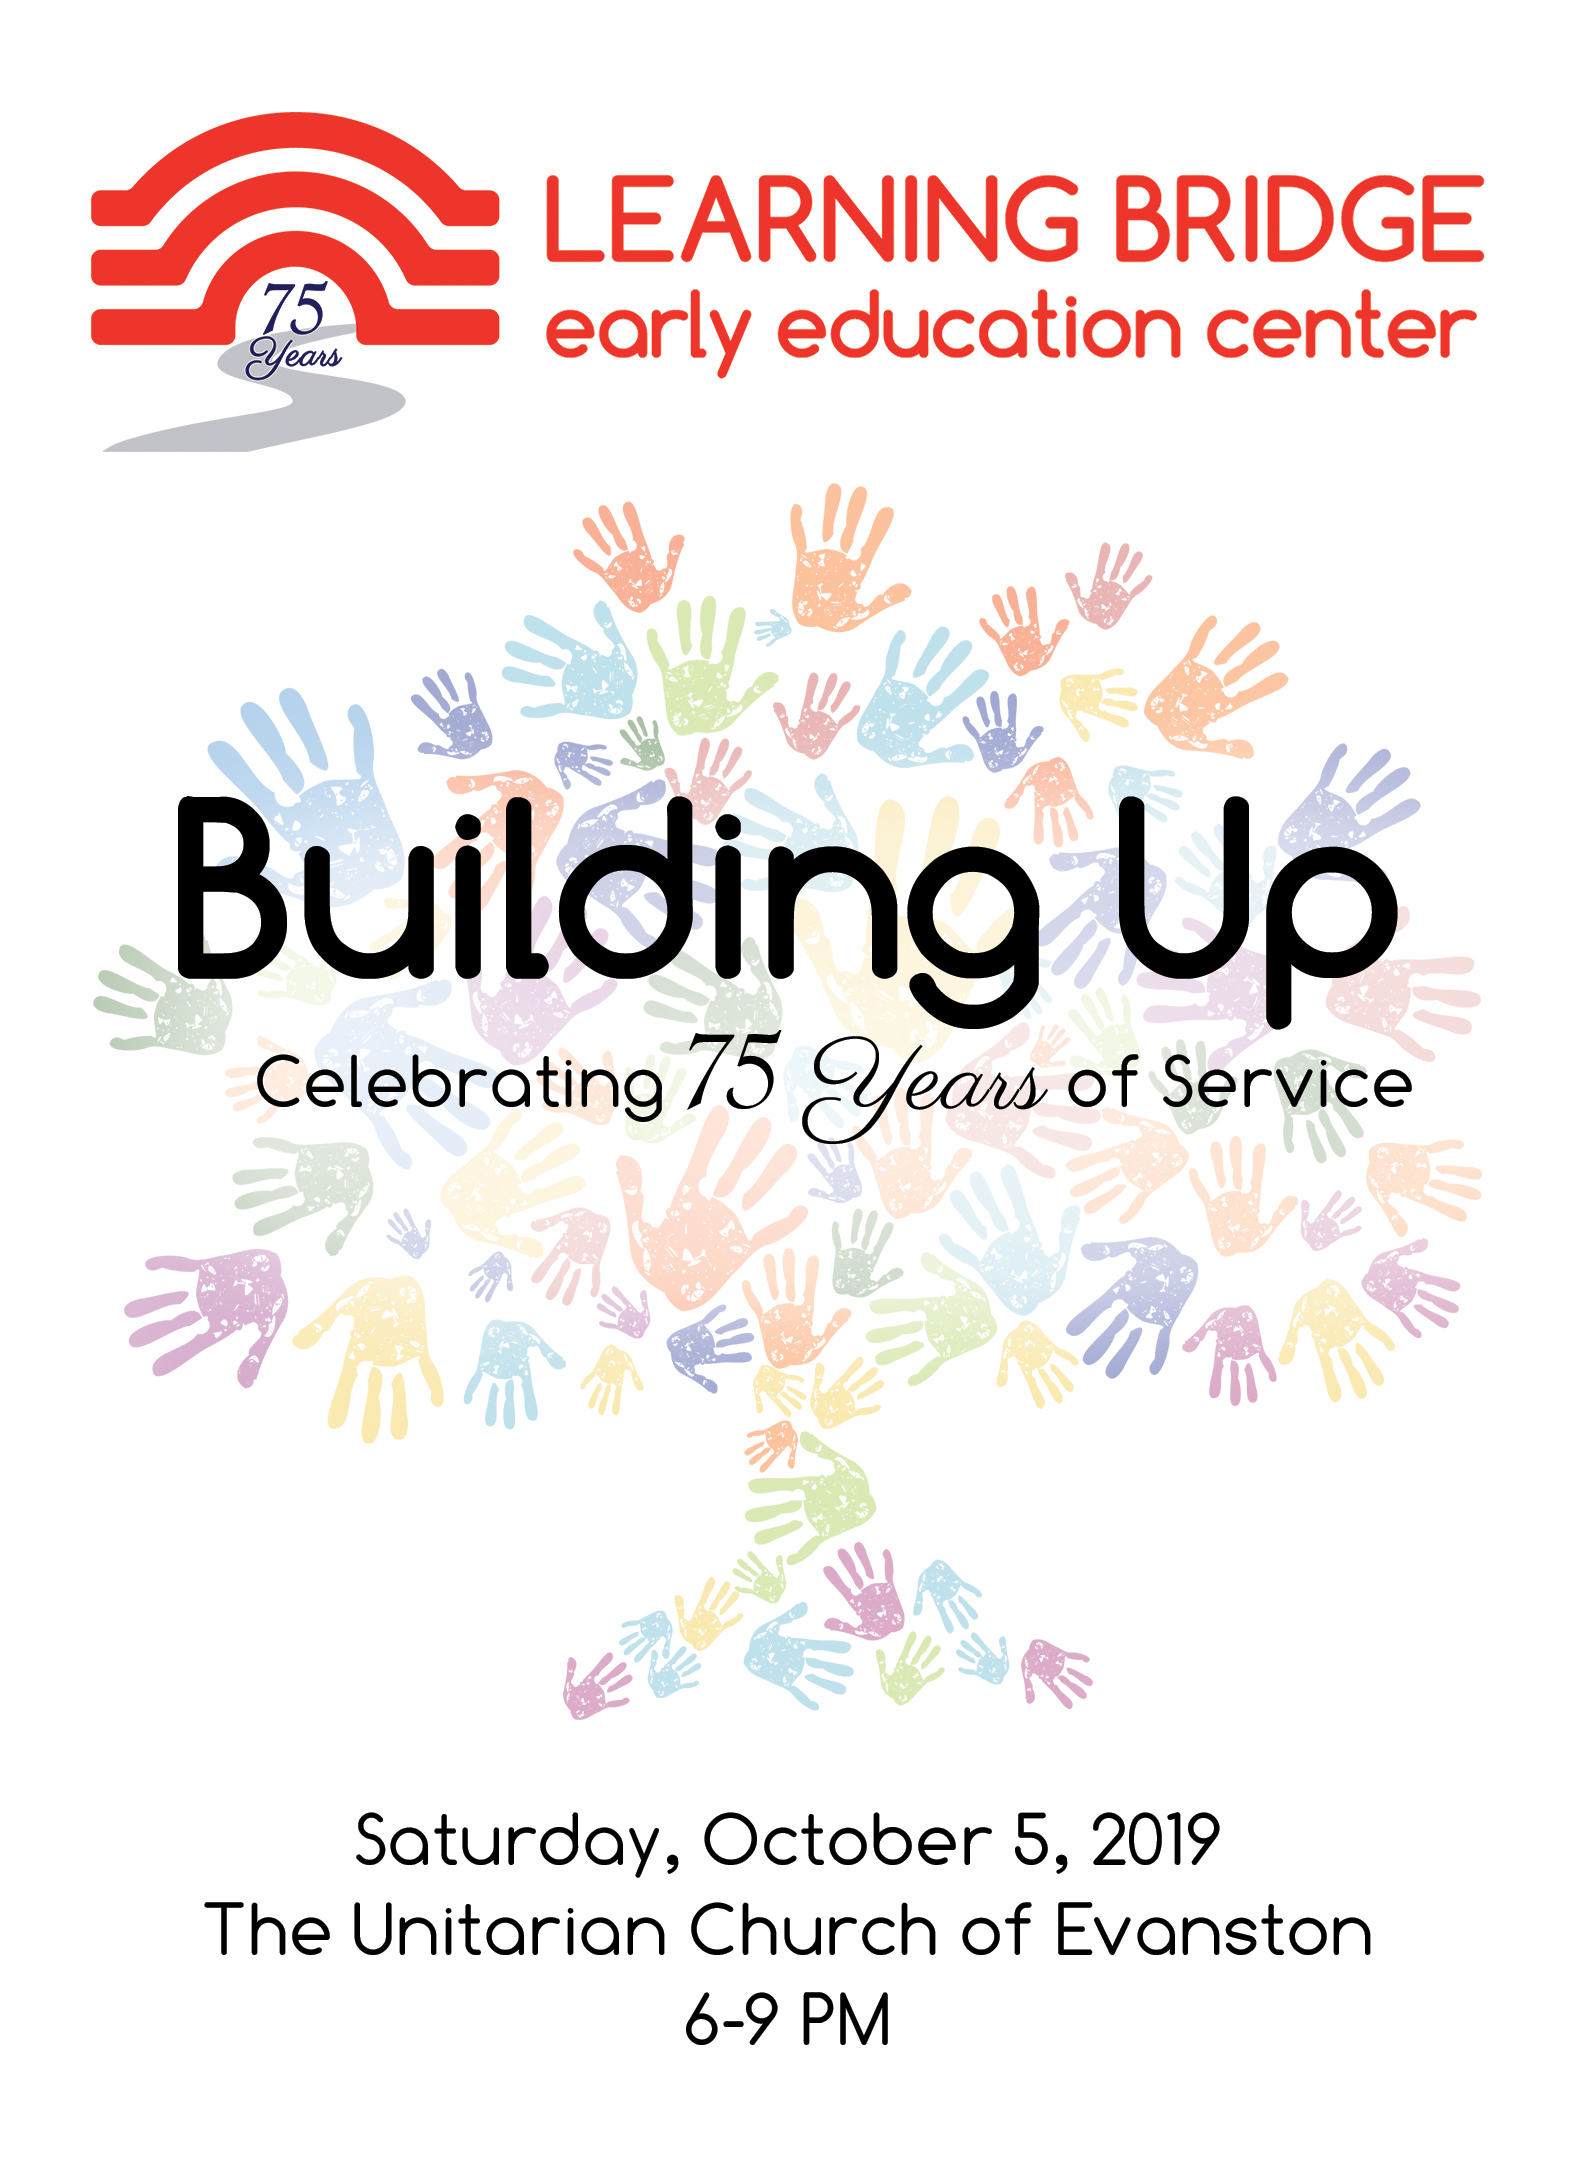 Event Details - When: 6-9 pm on October 5, 2019- 6:00 pm - Welcome Reception- 7:00 pm - Event program, small plates, refreshmentsWhere: The Unitarian Church of Evanston, 1330 Ridge Ave. Evanston, IL, 60201Parking: Accessible parking reservations taken upon request. Parking lot accessible on Greenwood Street, or street parking on Greenwood or Asbury.Child care: Limited event babysitting space available. See form below.Building Up Story Collection: Please send us your favorite Center stories for our growing collection.If you have any questions, email Jenny Merdinger at merdingerj@lbeec.org or call (847) 869-2680.